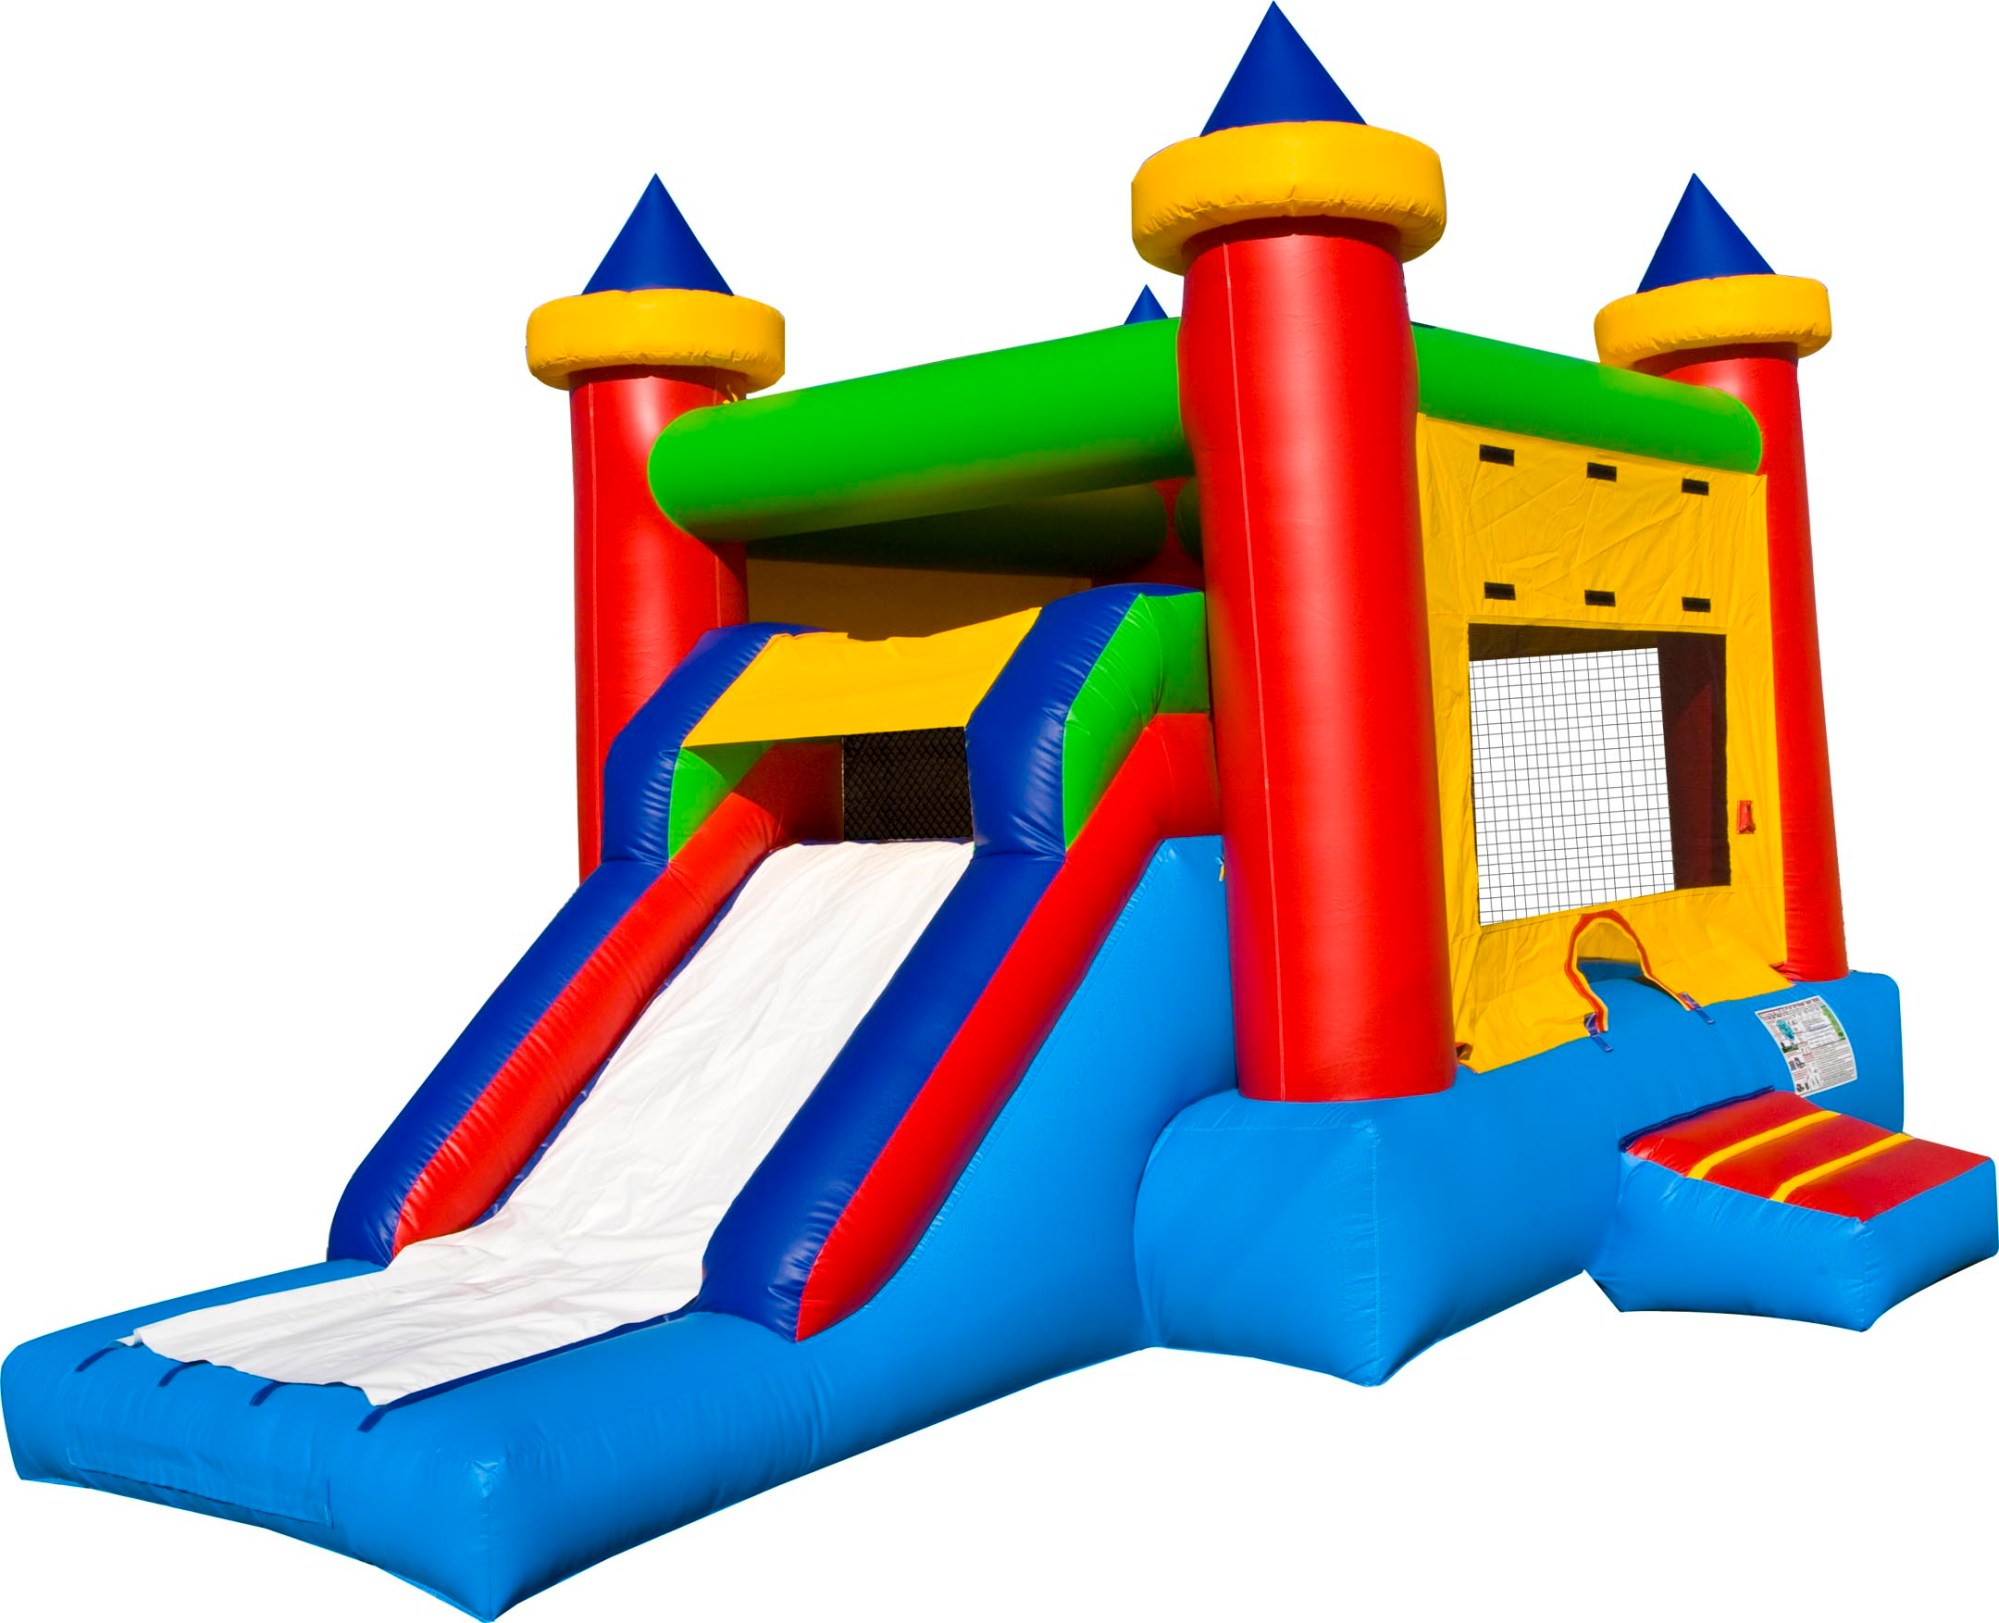 hight resolution of 2160x1753 carnival bounce house clipart